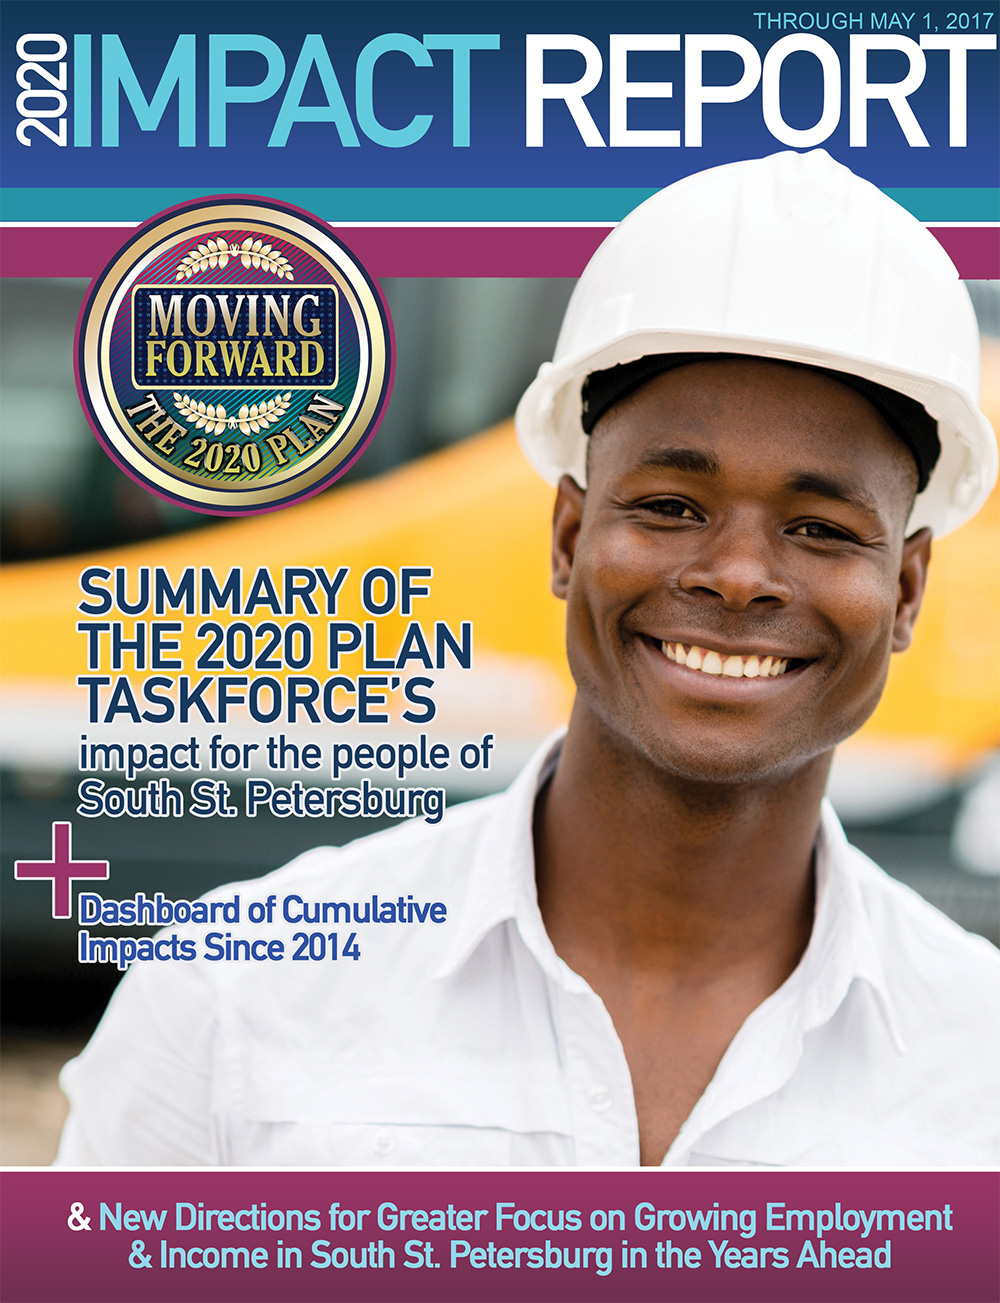 2020 Impact Report - This annual impact report offers a snapshot of impact resulting from the collective work of 100+ organizations since January 1, 2014 toward the 2020 Plan goal to reduce poverty by 30% in South St. Petersburg.— 2020 Plan Impact Report • May 2017